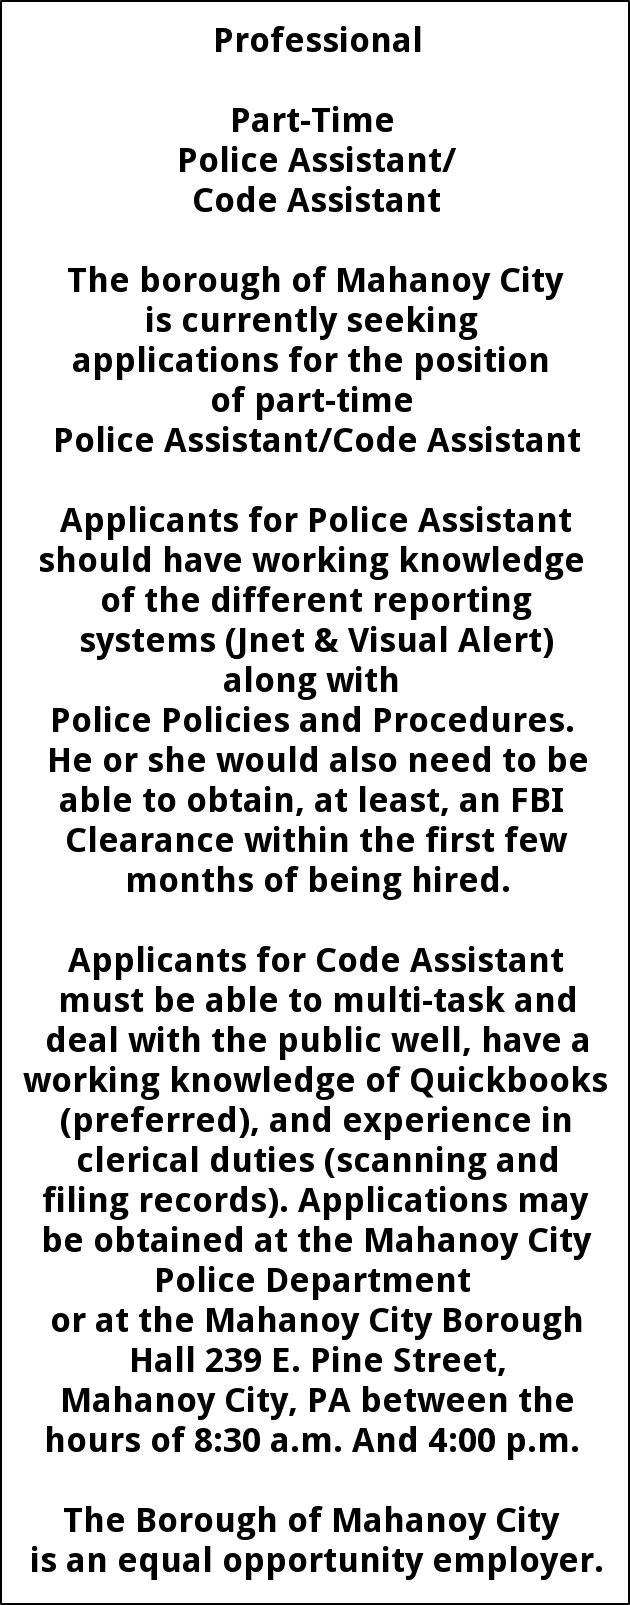 Police Assistant/Code Assistant Part-Time